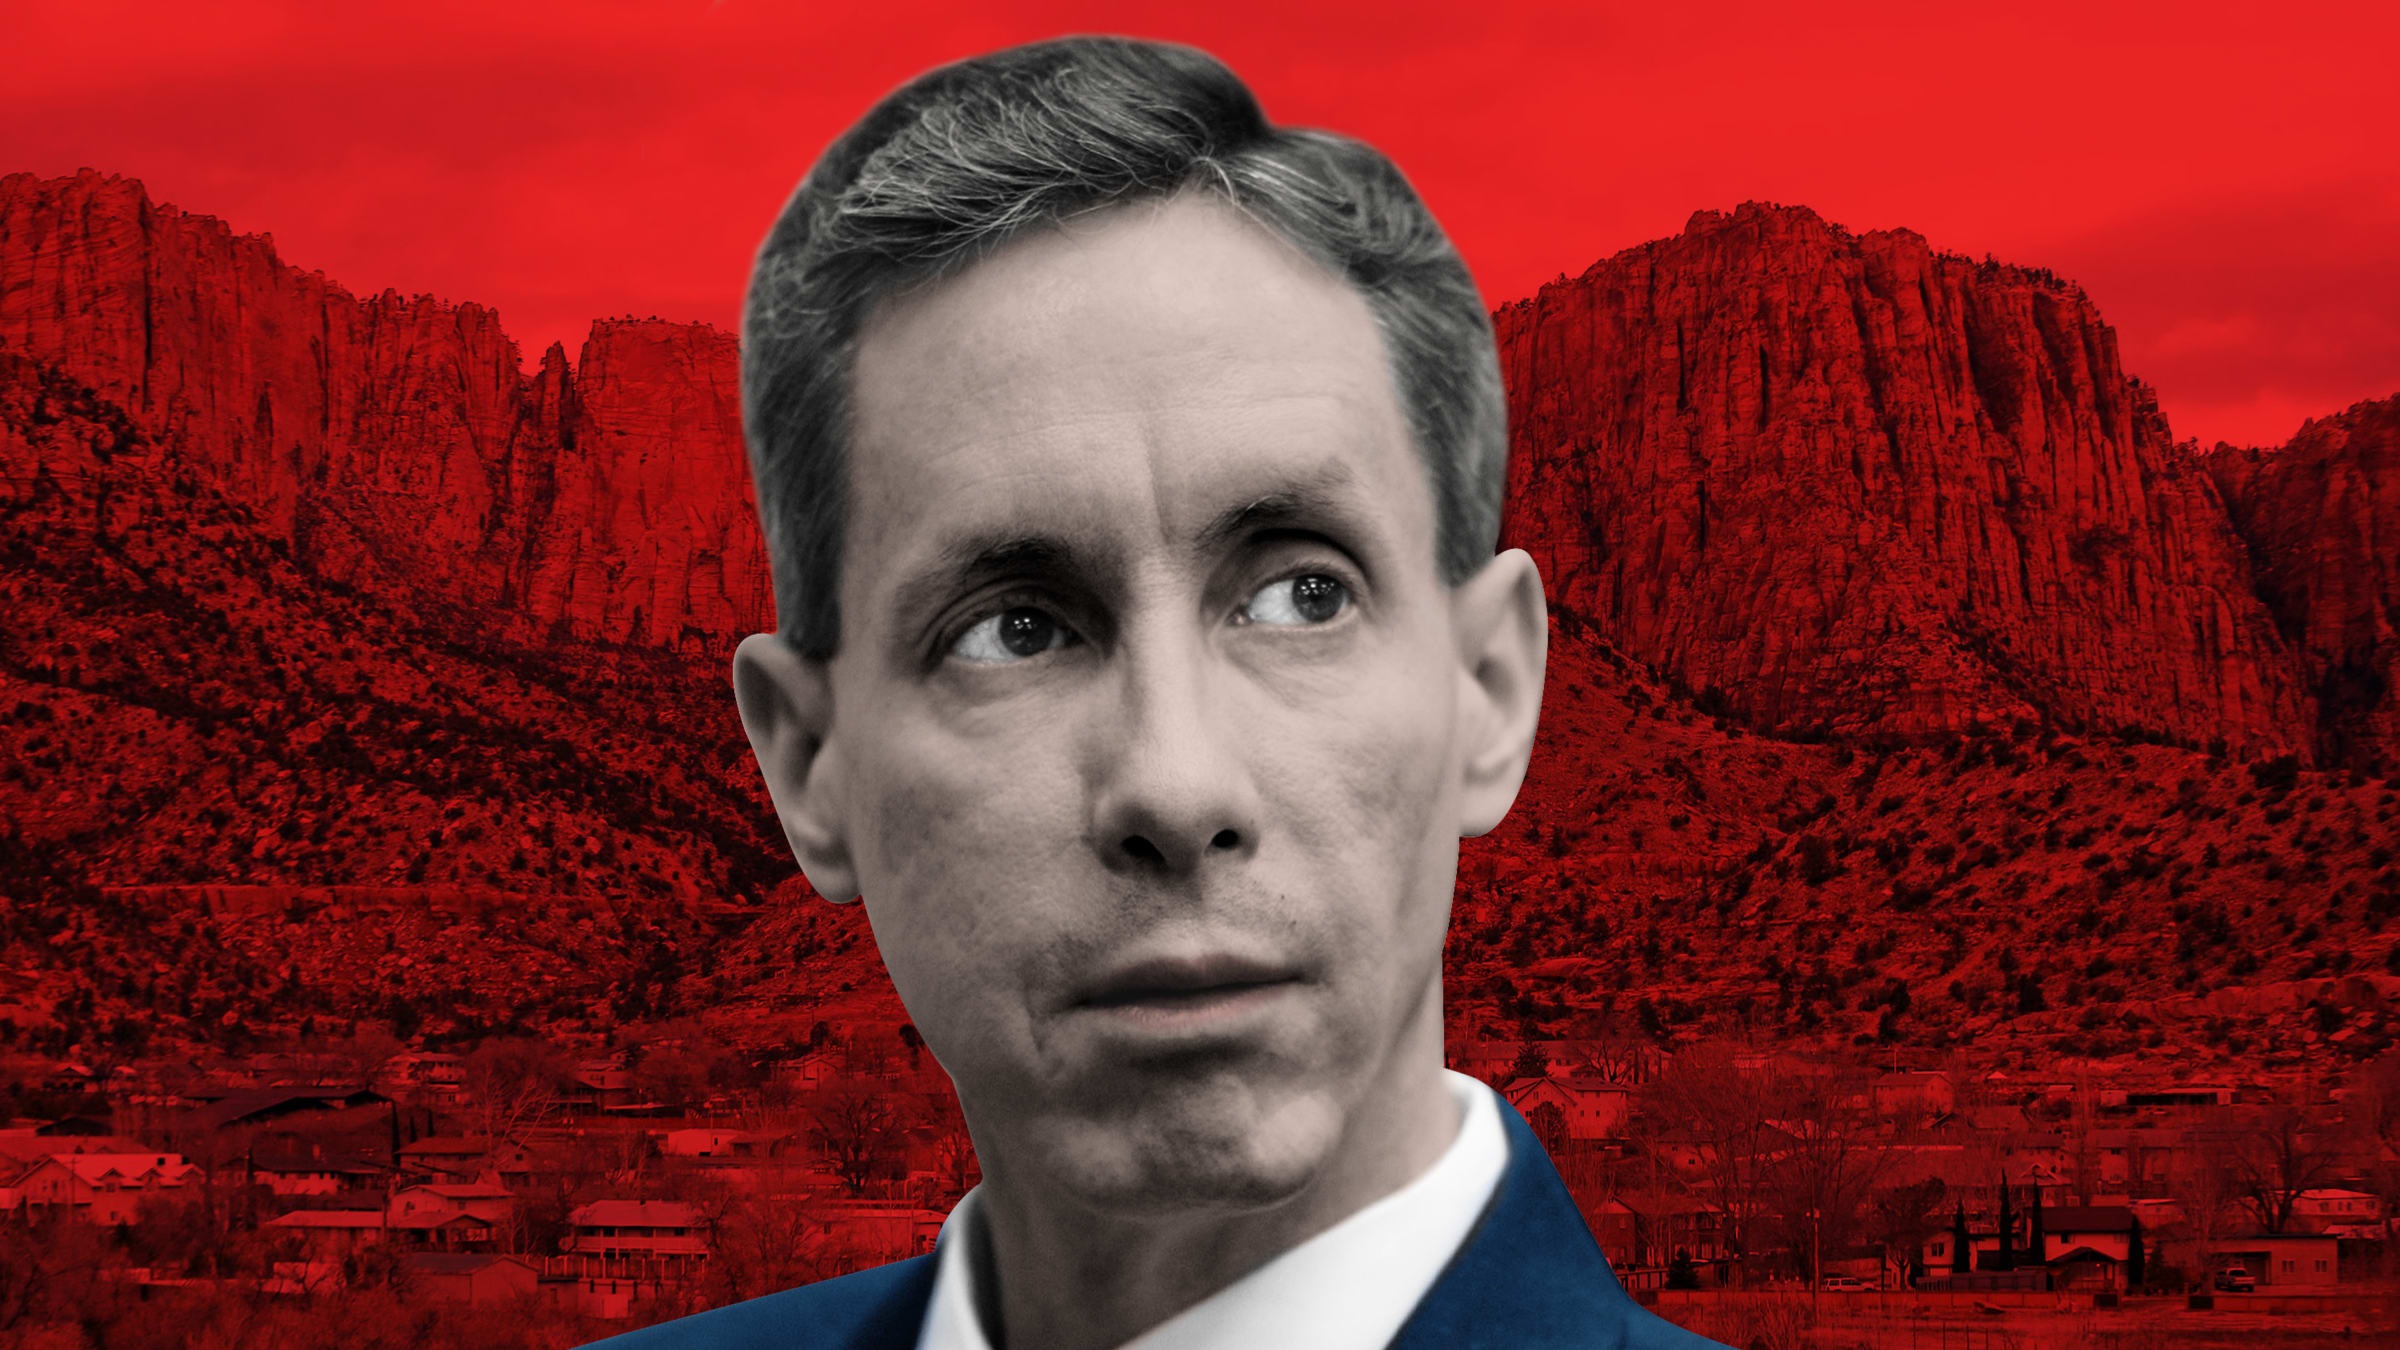 Warren Jeffs' Polygamist Cult Once Controlled This Town  Now It's